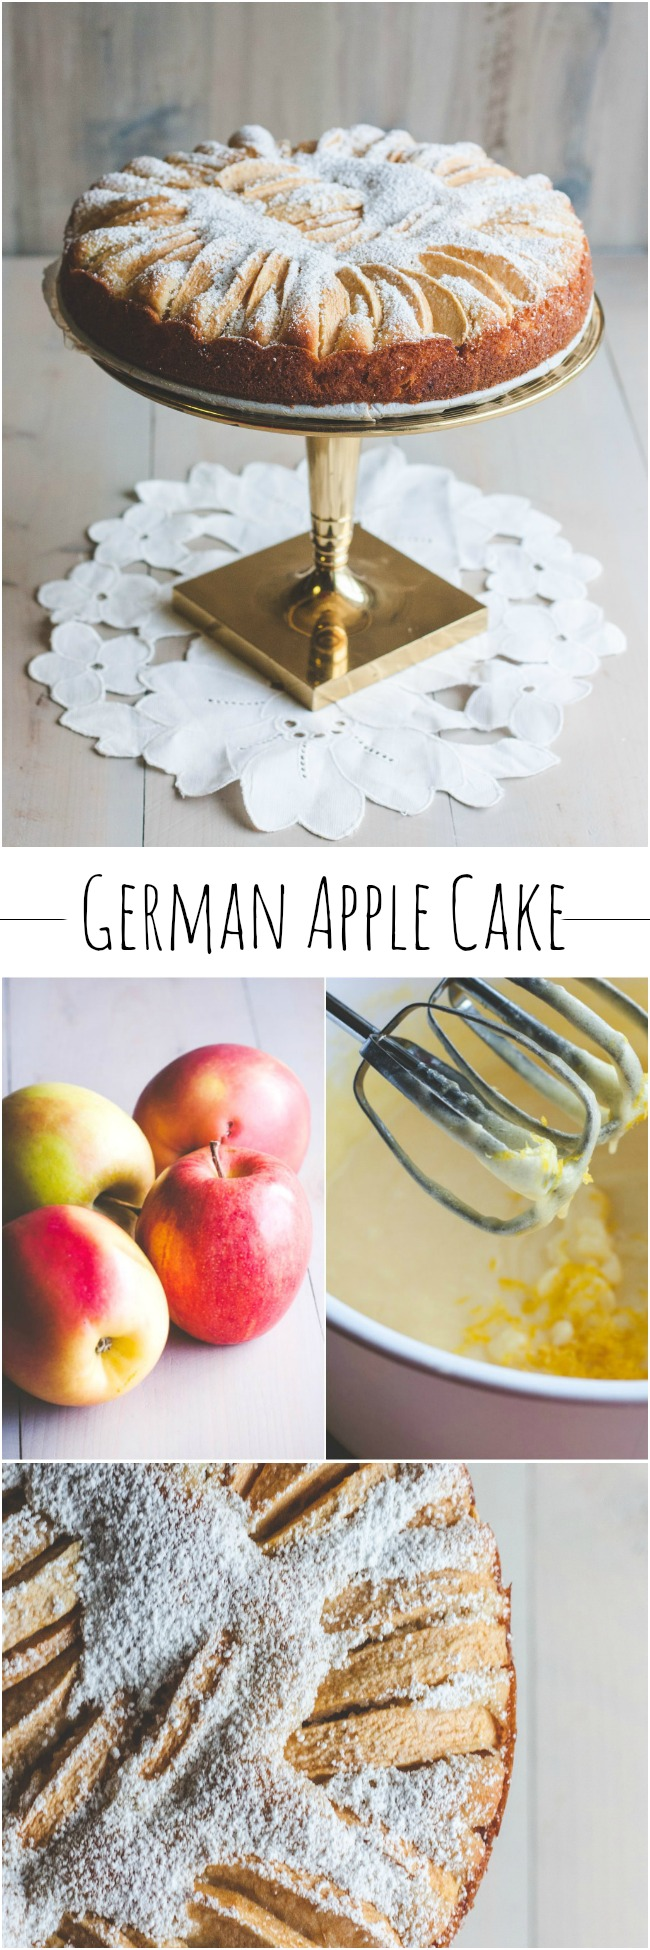 German Apple Cake from @sweetphi perfect for a fall dessert and when you are looking for an apple recipe